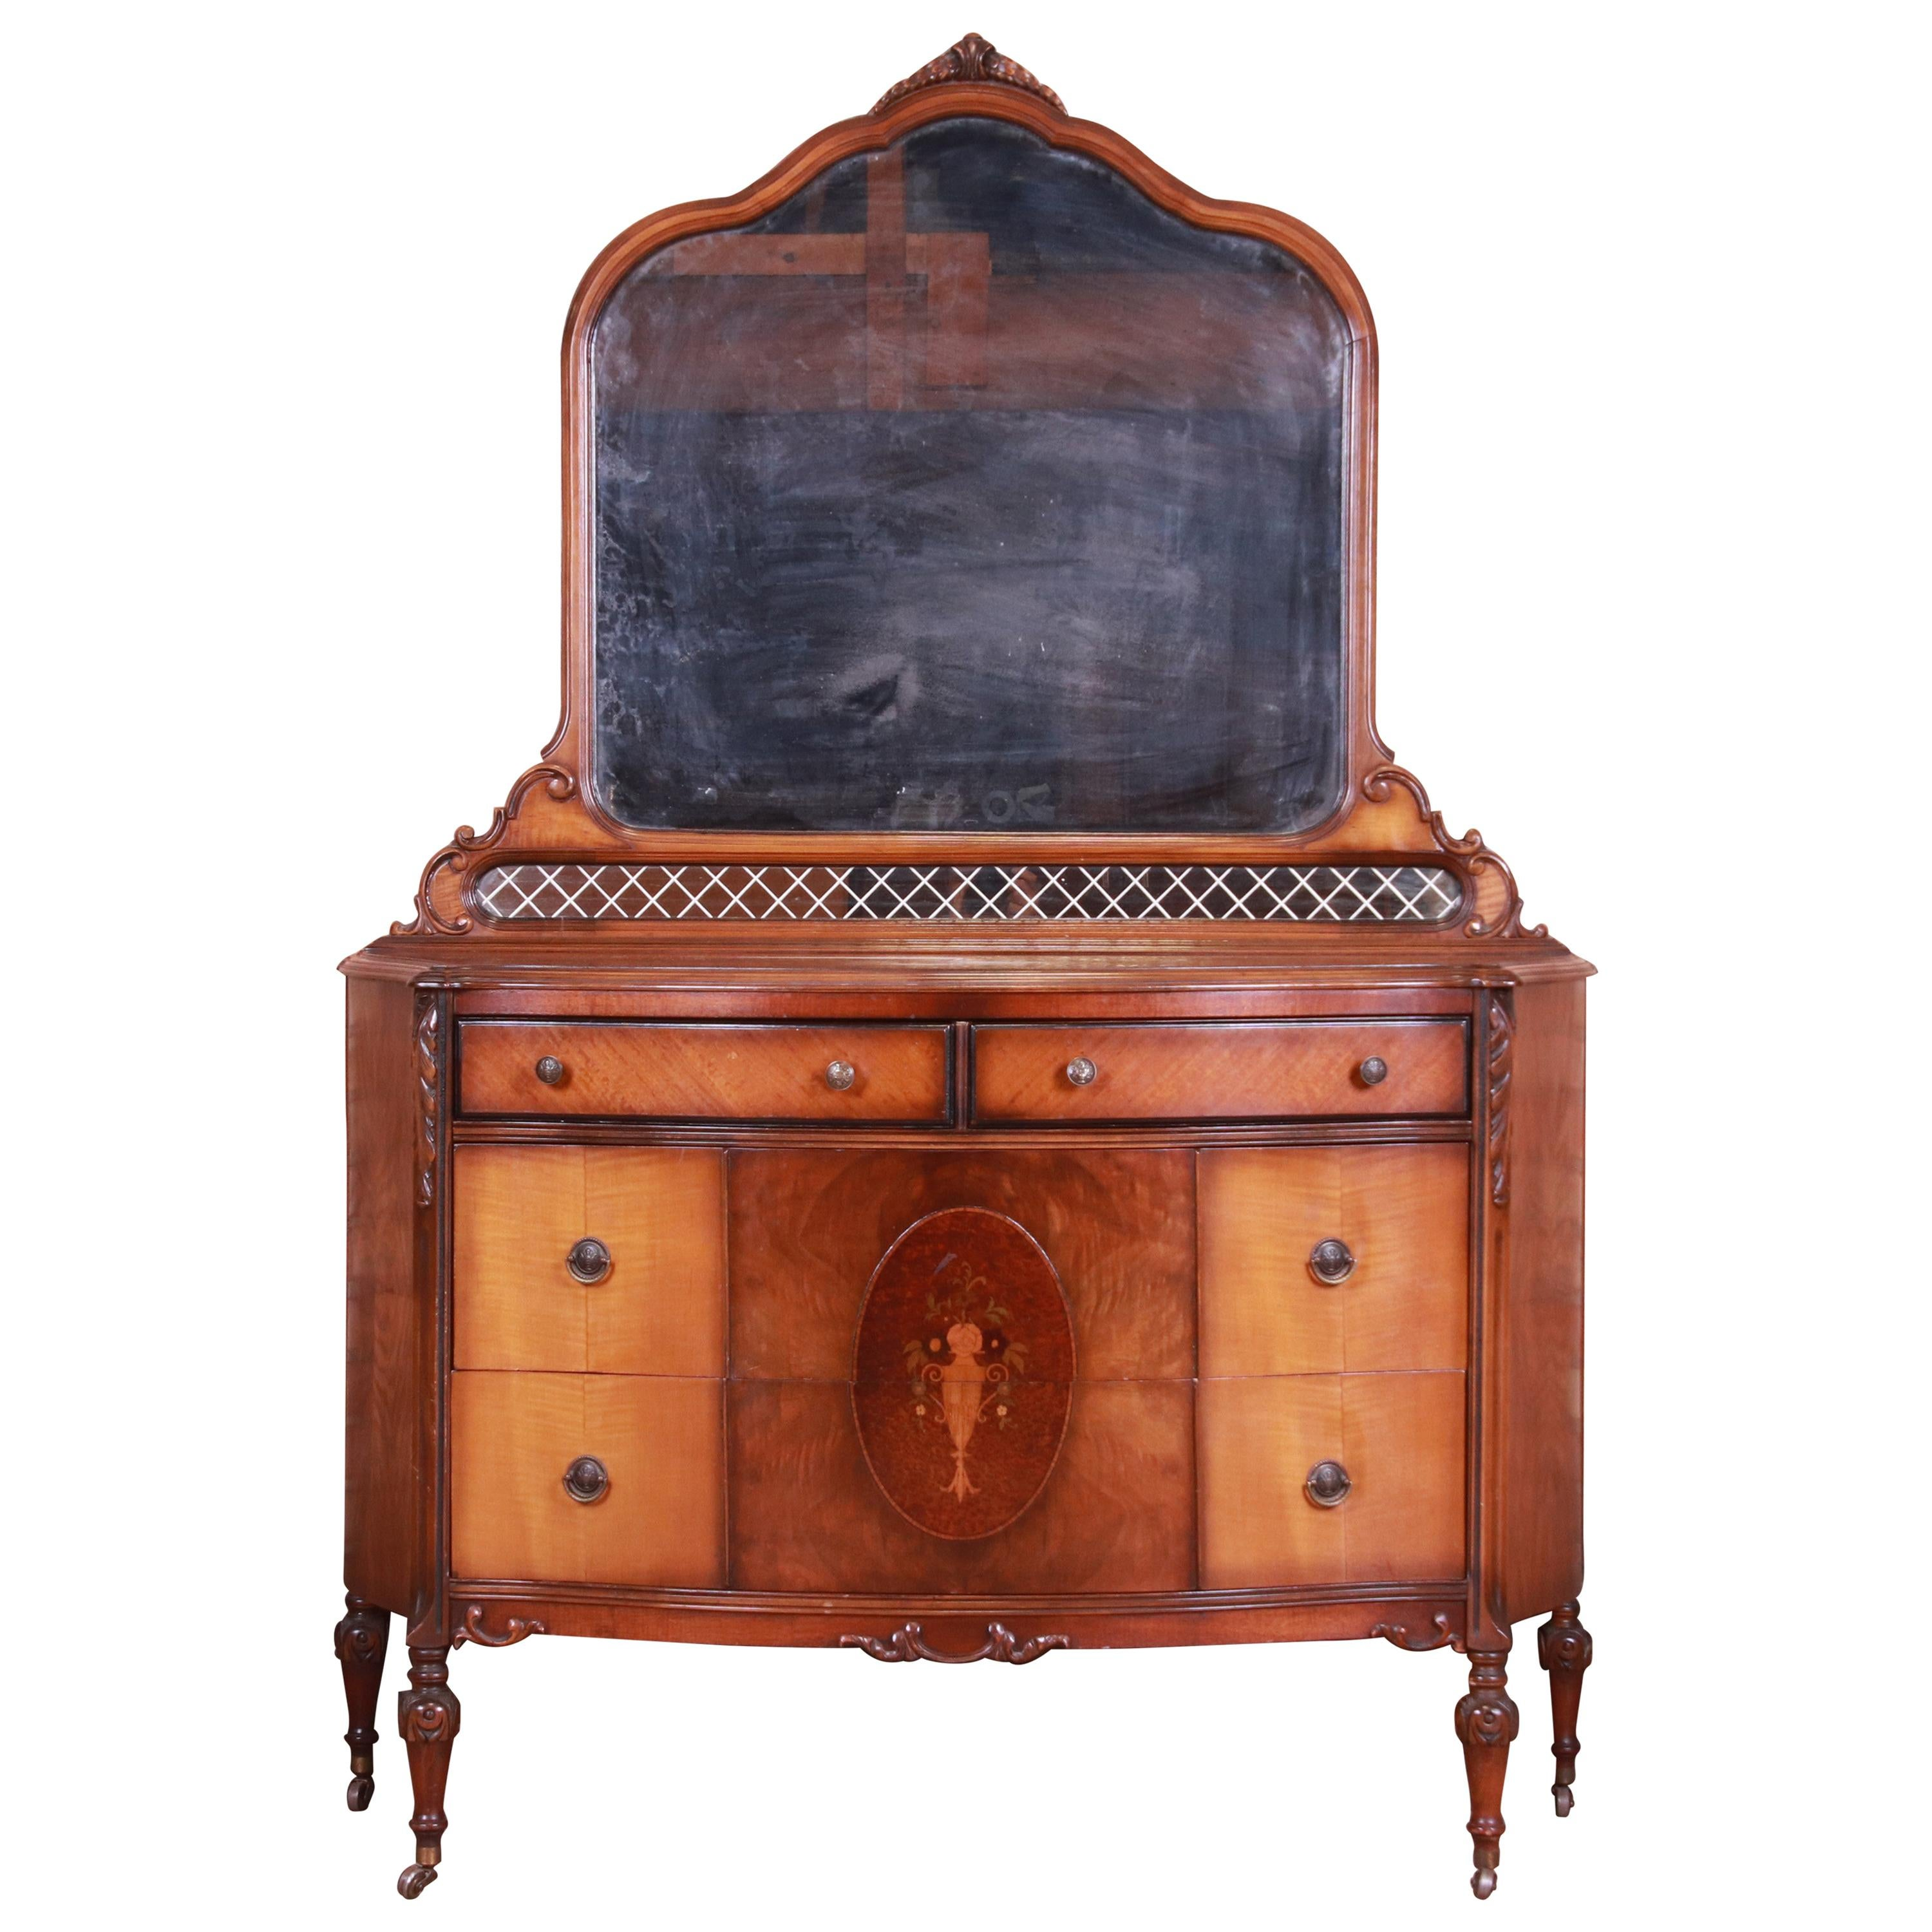 Antique Art Deco Burled Walnut and Inlaid Marquetry Dresser with Mirror, 1920s